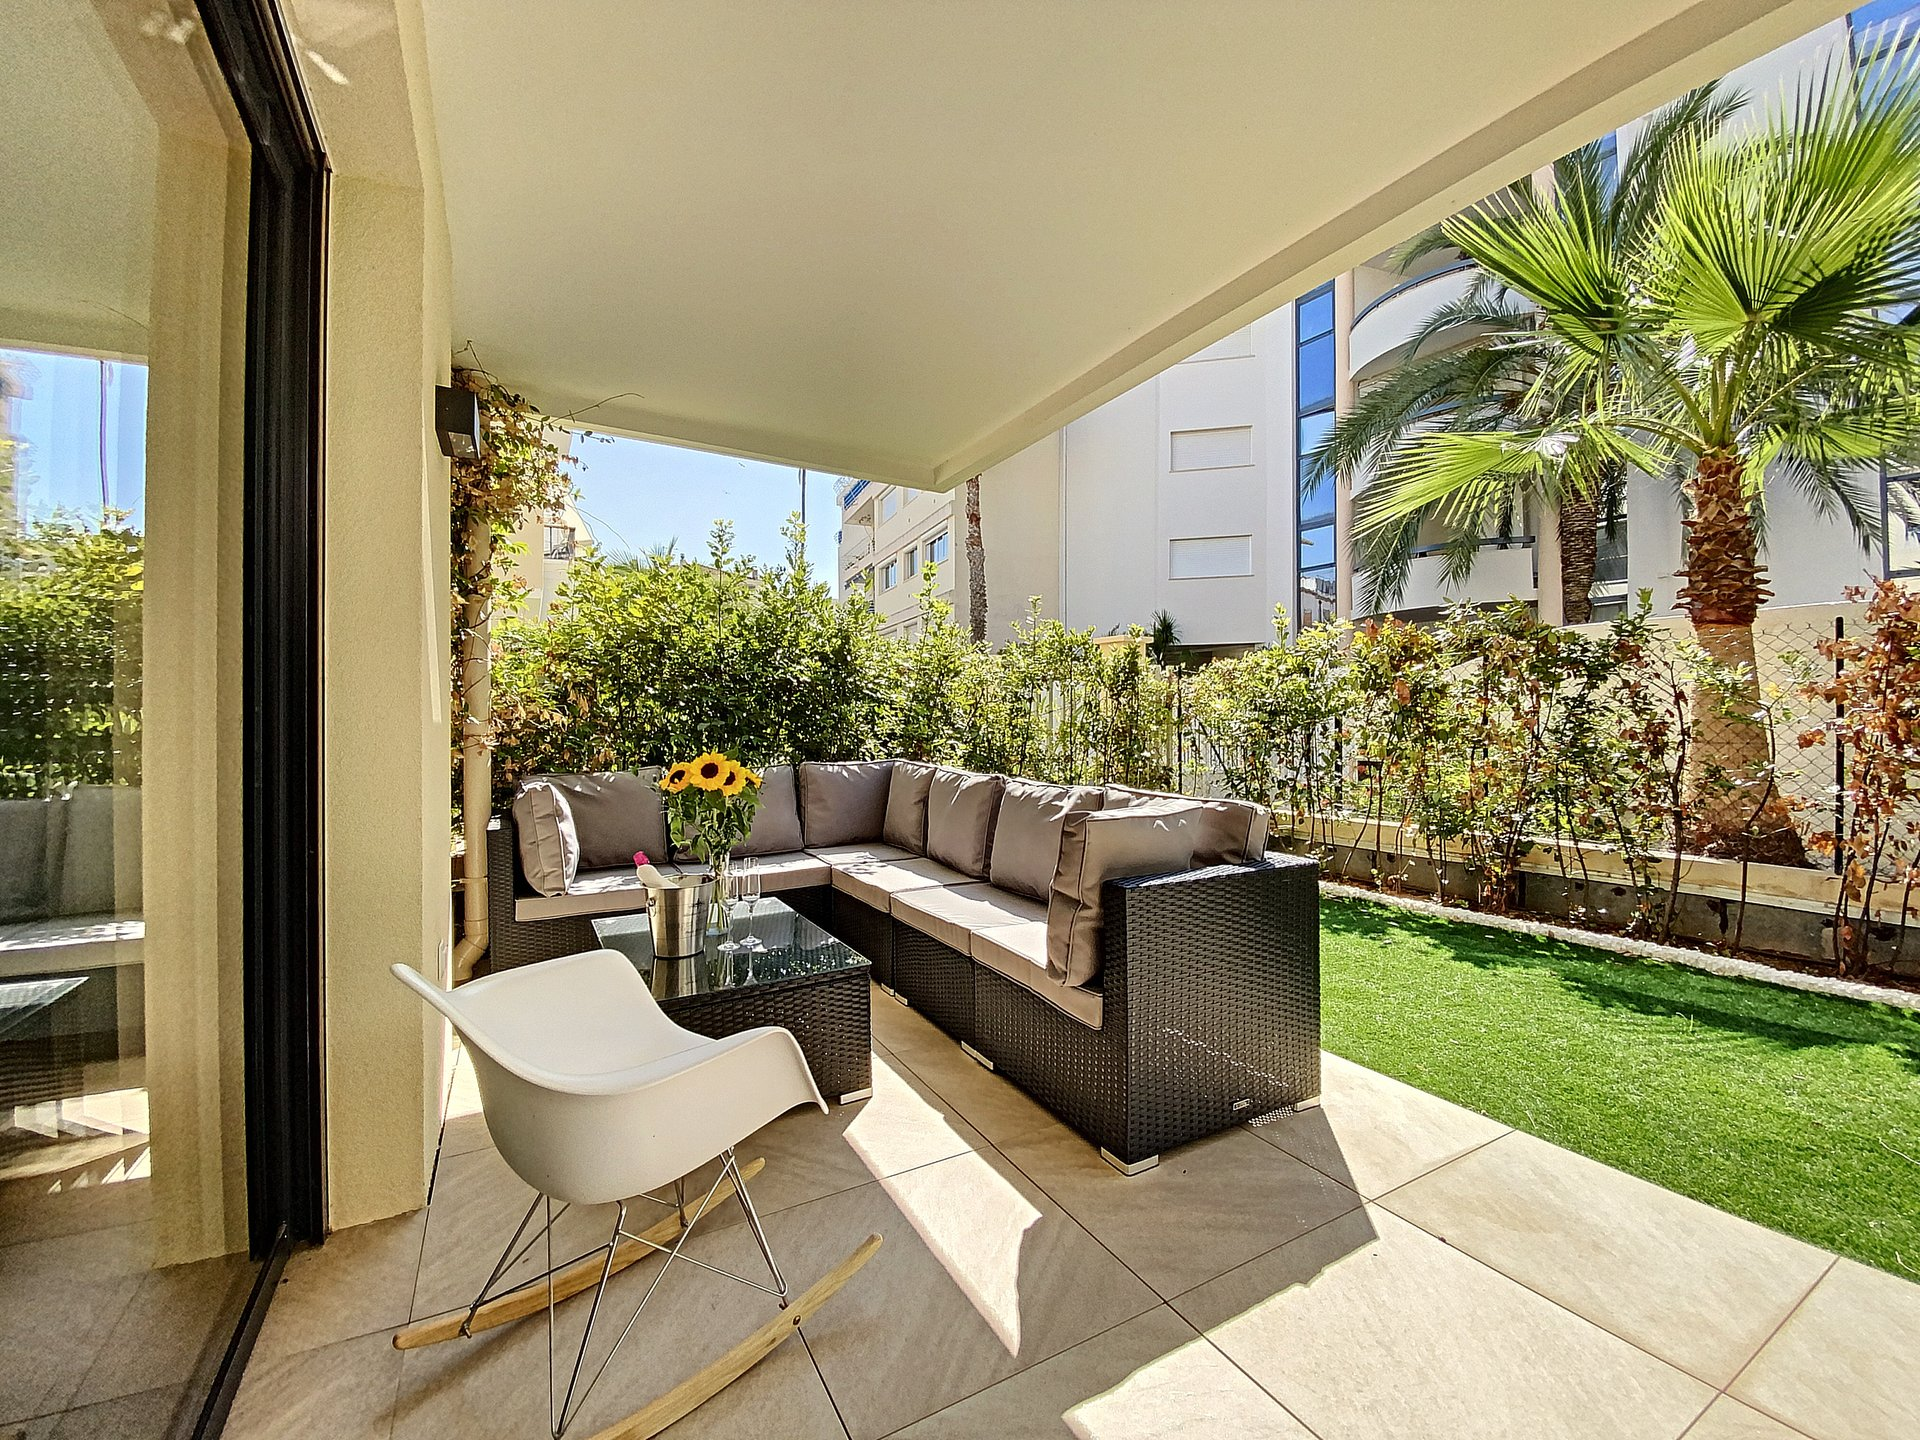 2-room apartment in Cannes